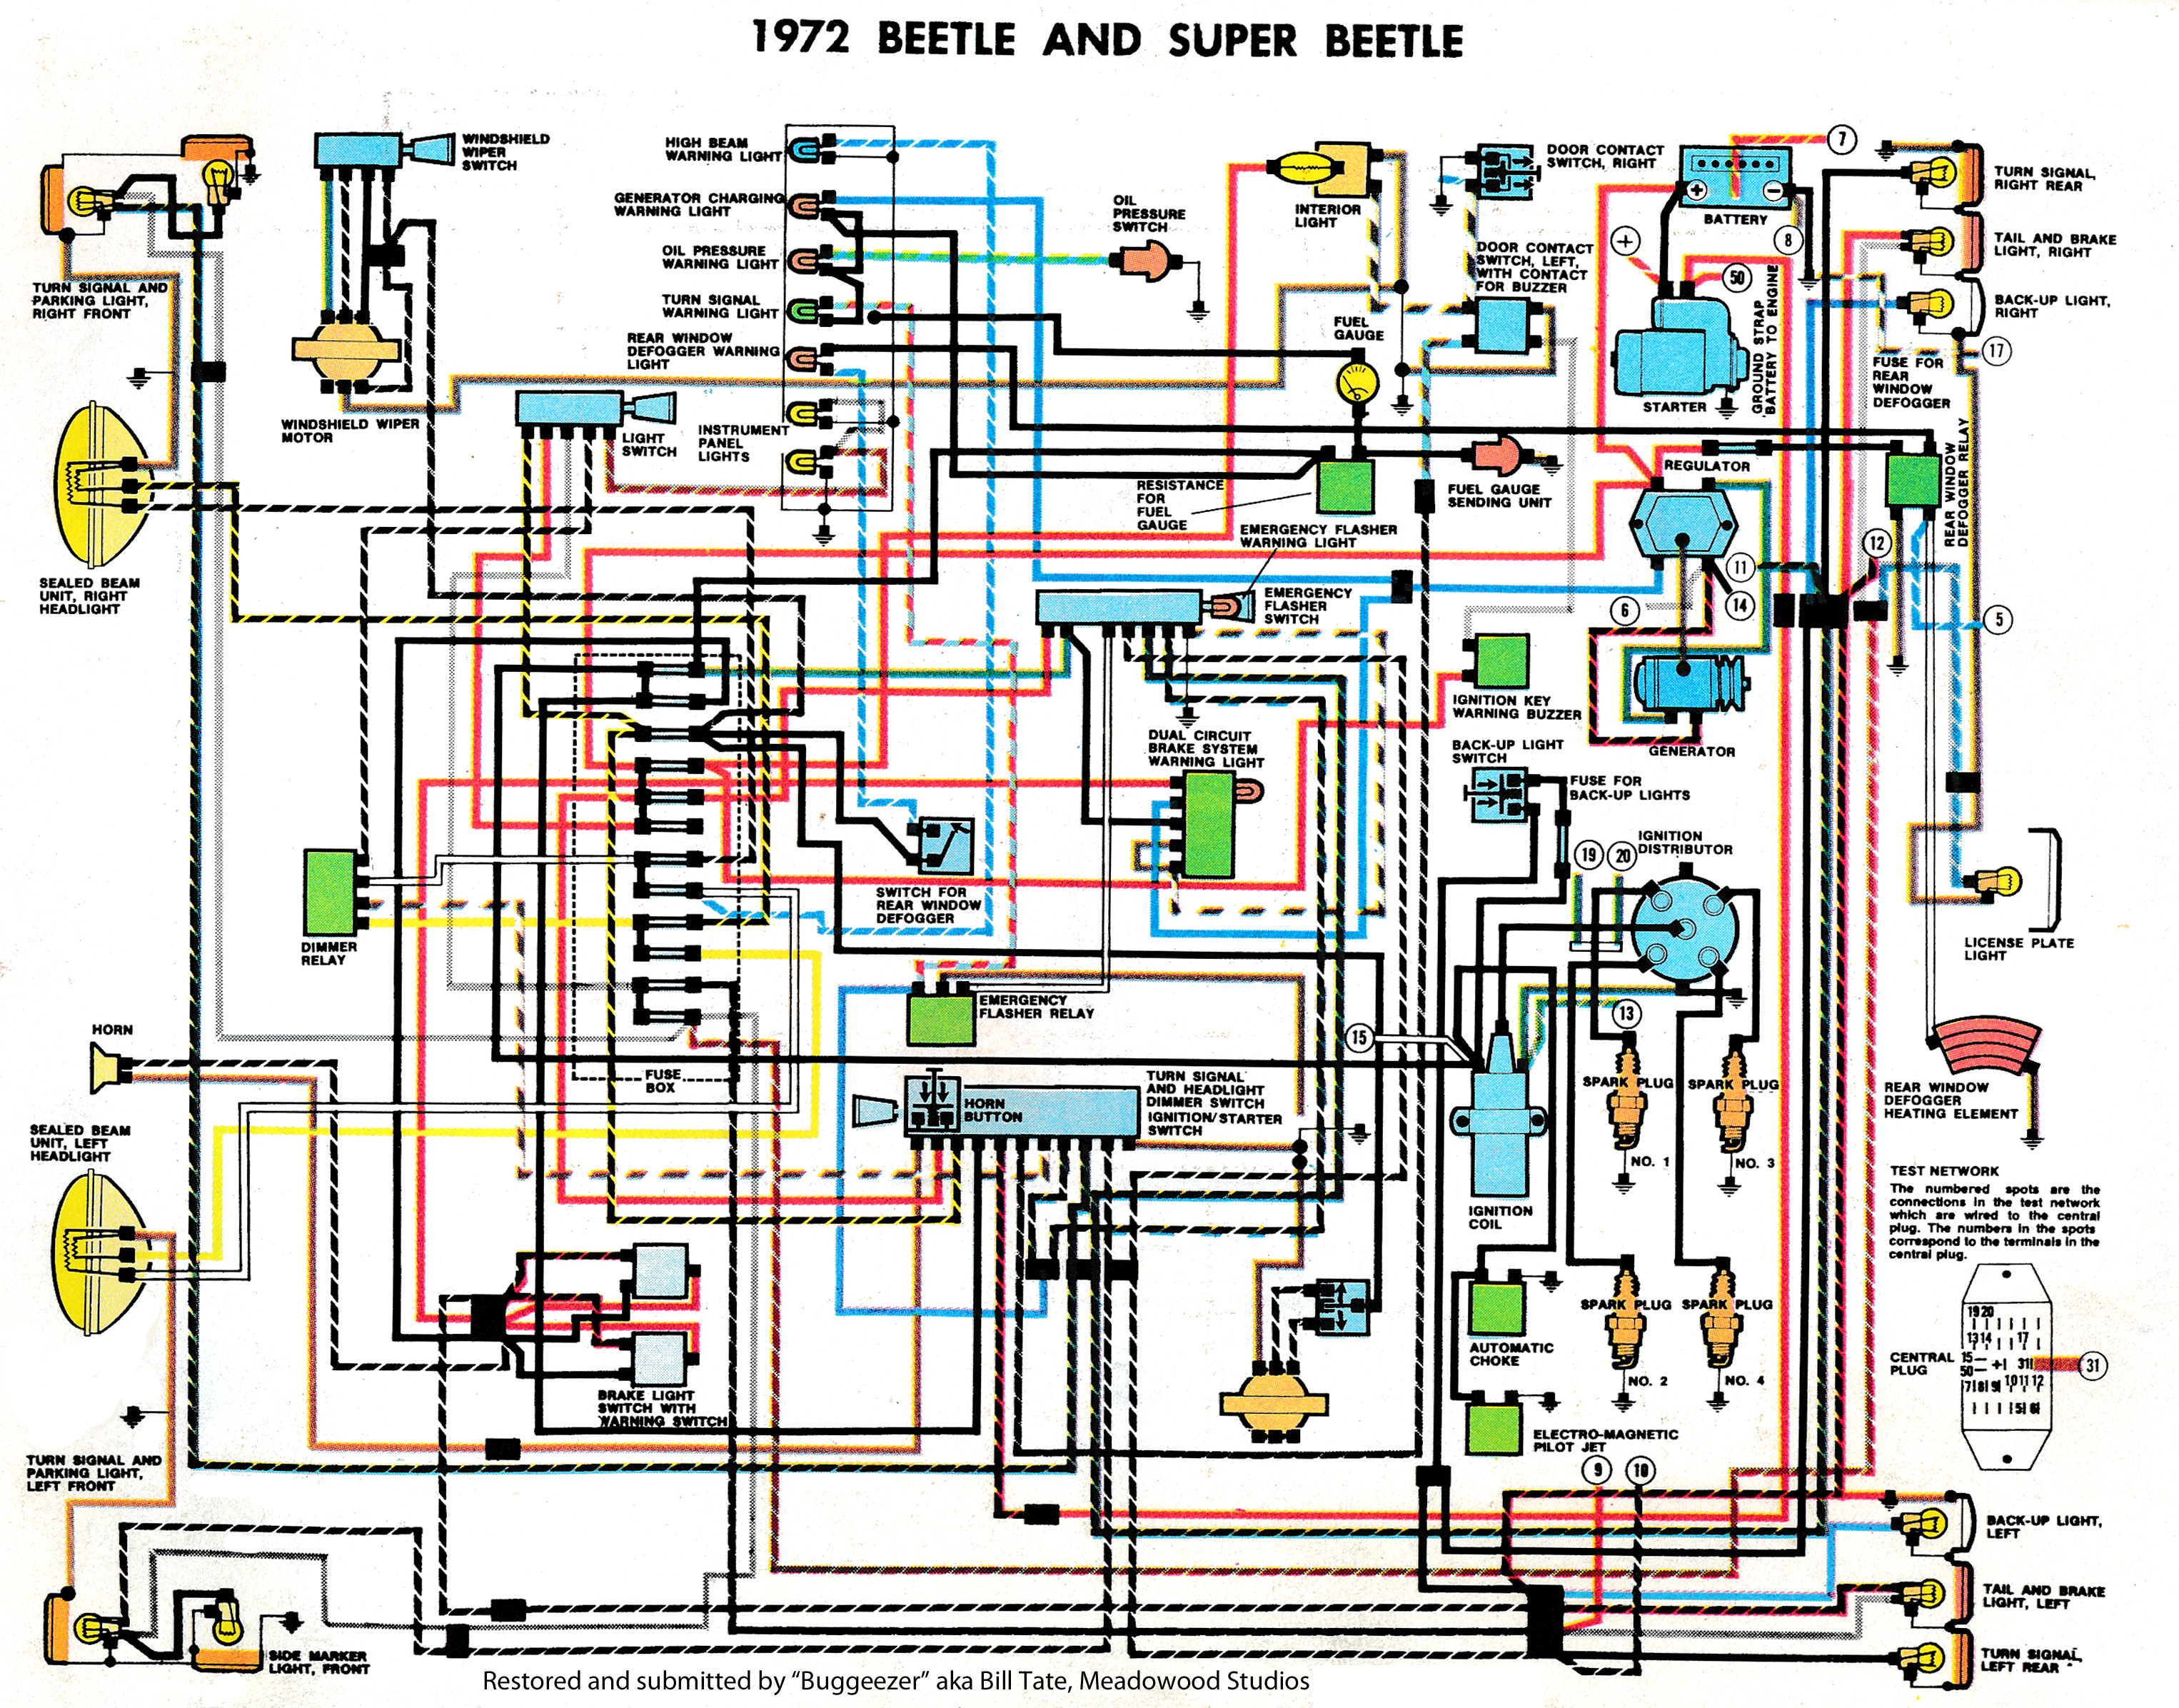 Vw Beetle Wiring Diagram Vw Beetle Wiring Diagram 1970 Camaro Rs Vw